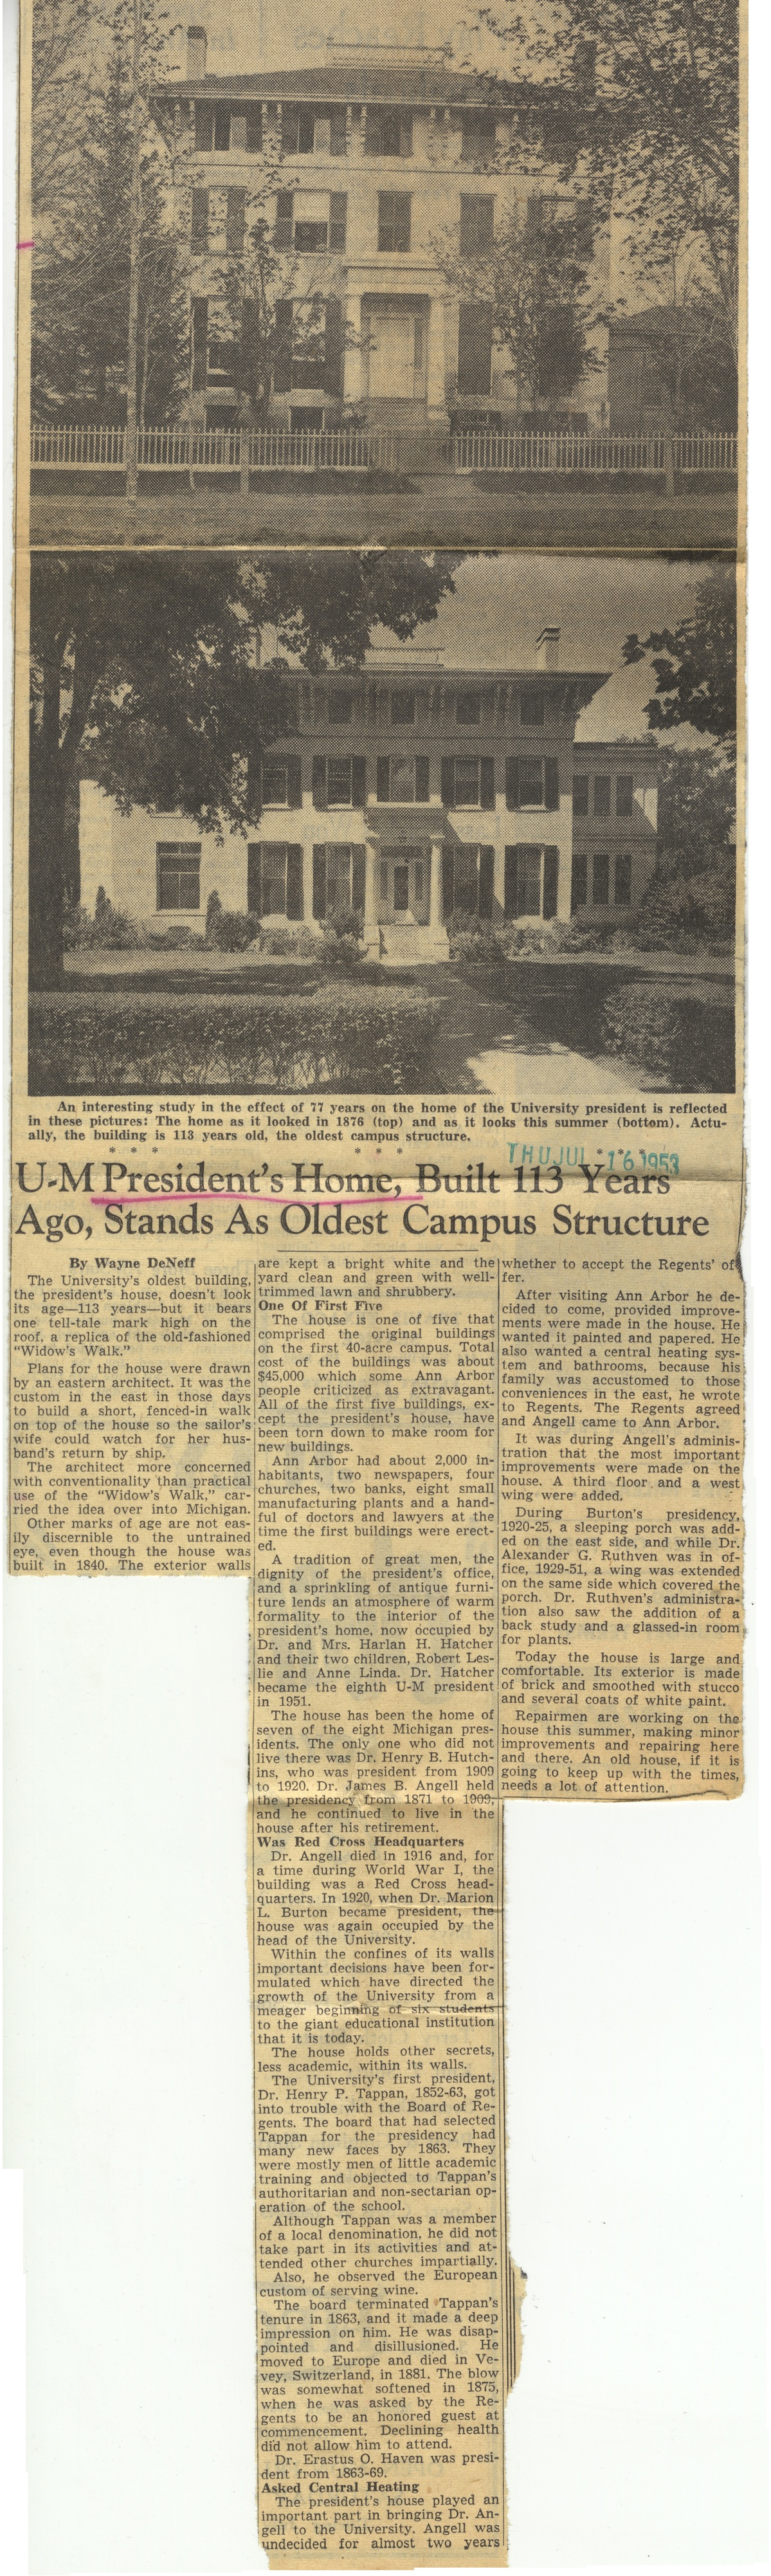 U-M President's Home, Built 113 Years Ago, Stands As Oldest Campus Structure image